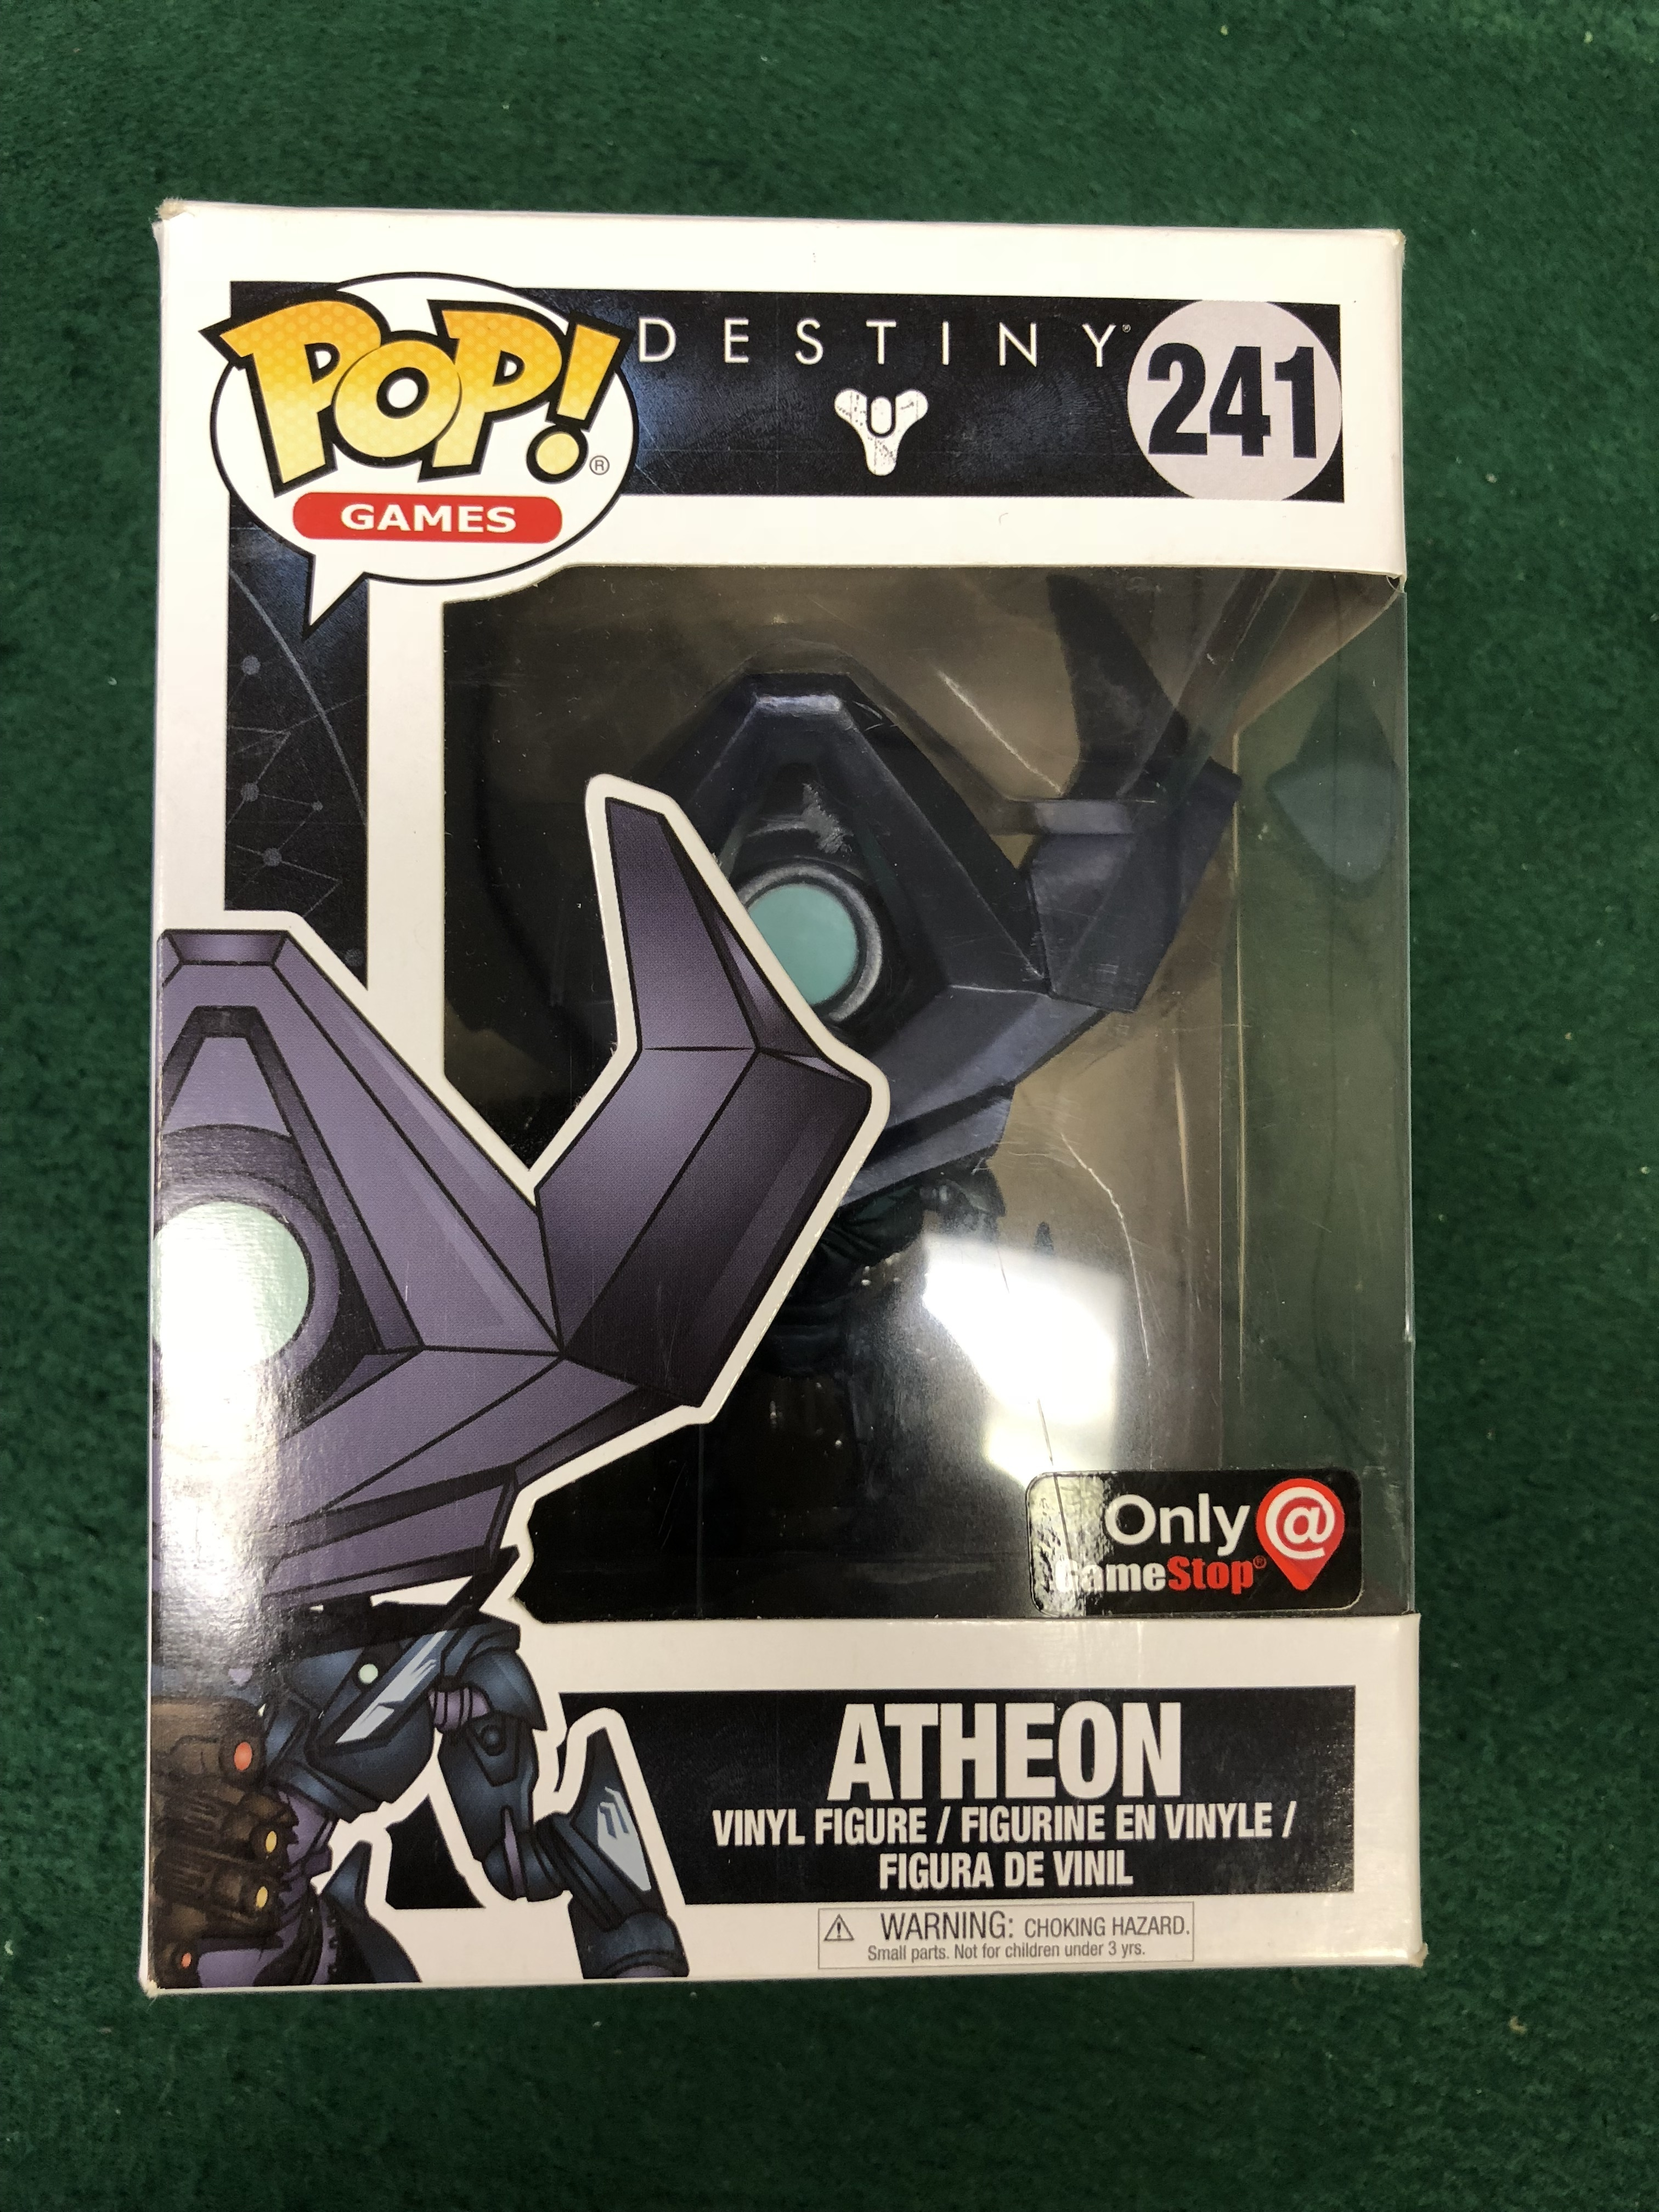 POP! DESTINY 241 - ATHEON VINYL FIGURE